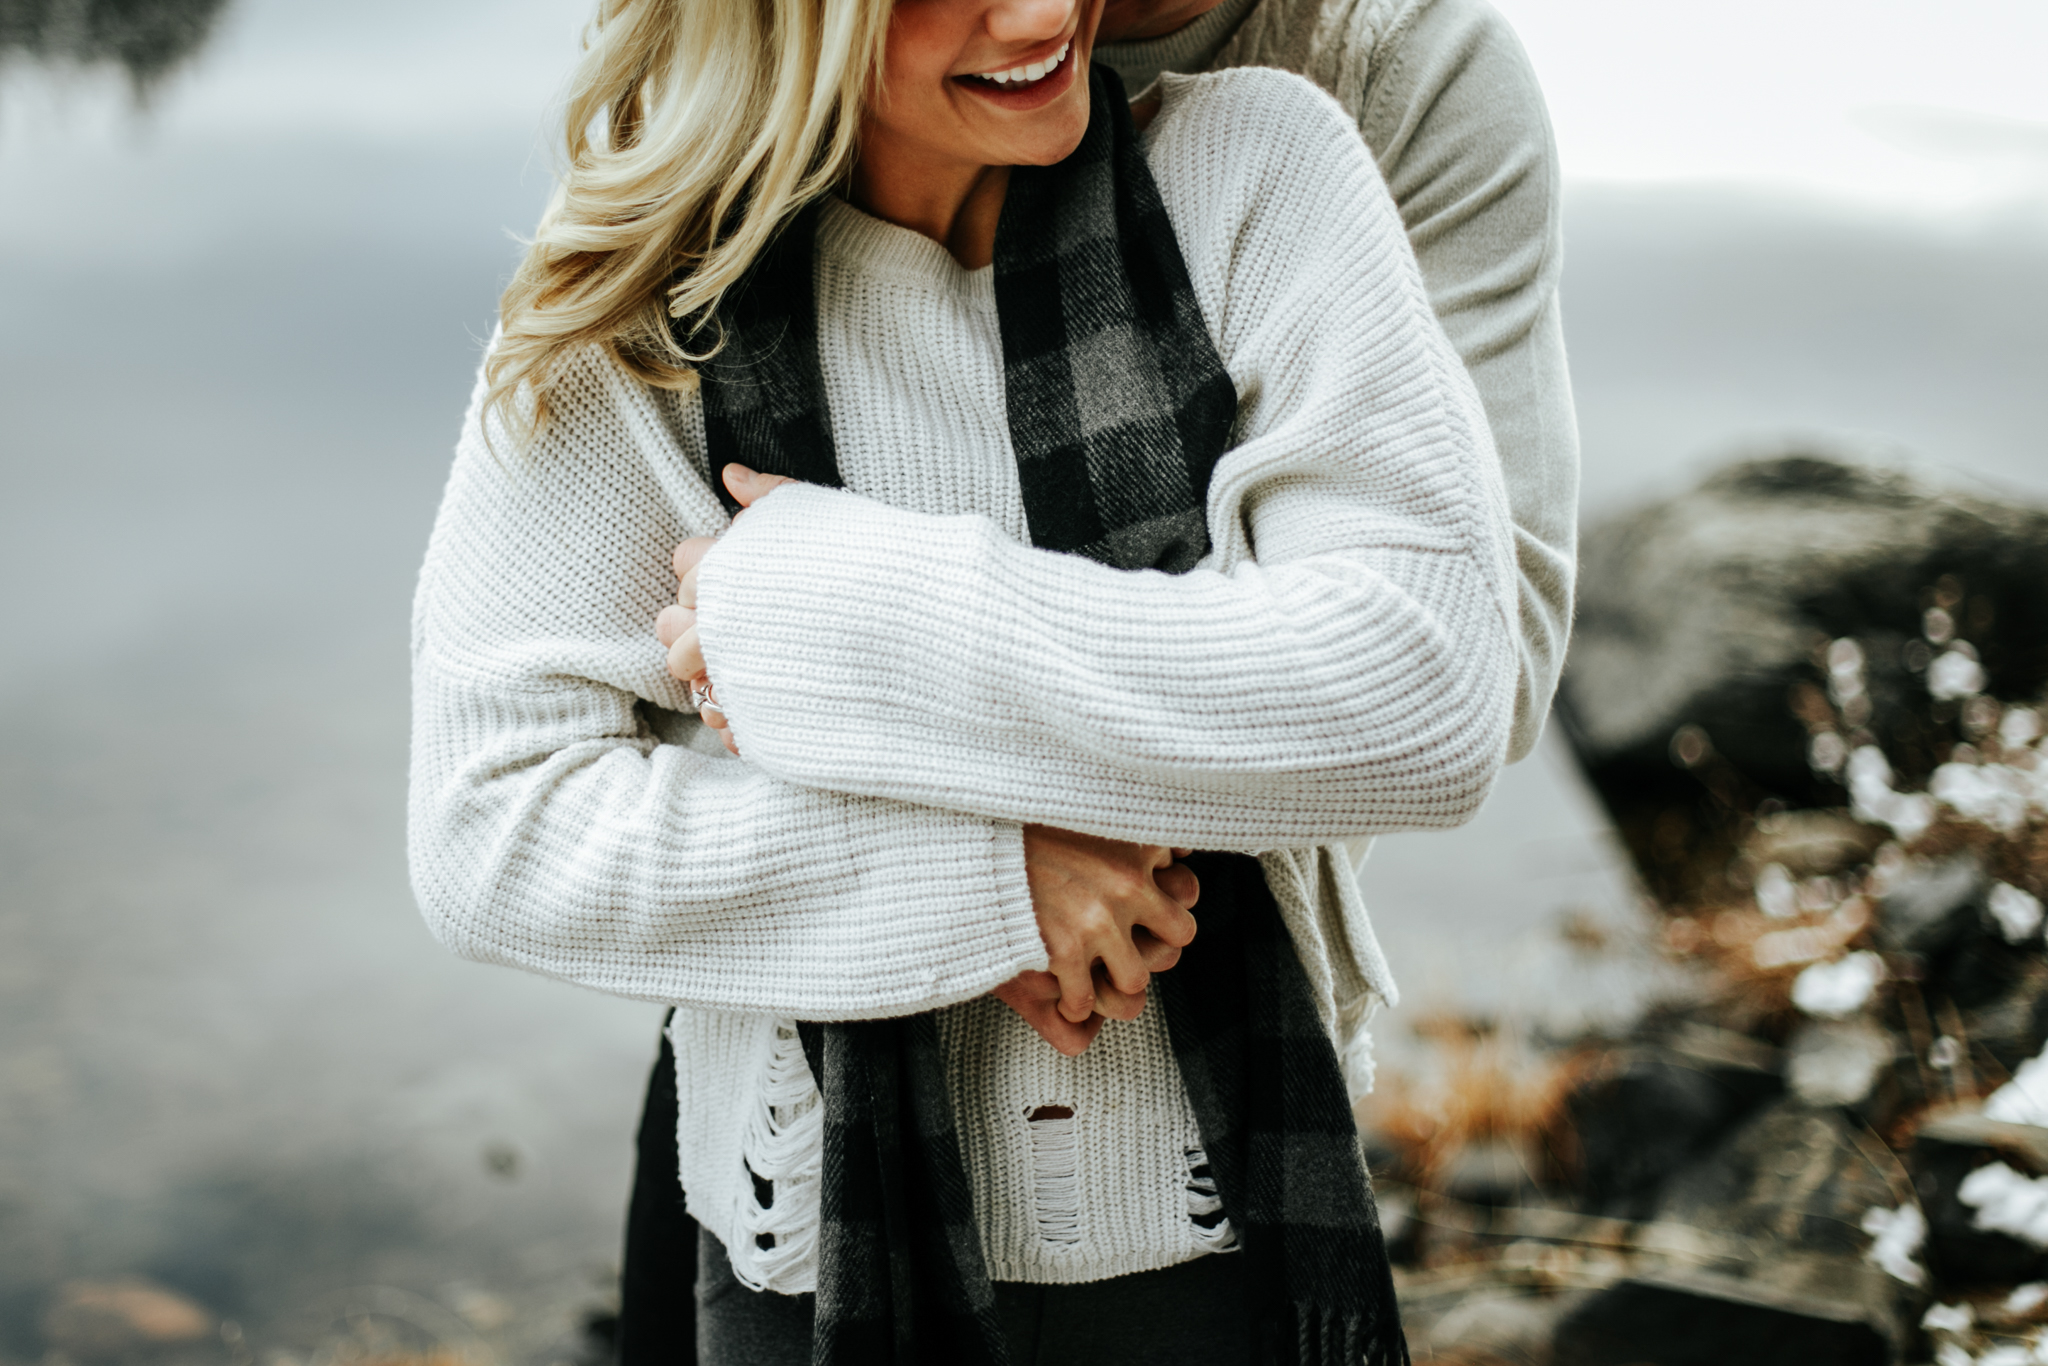 love-and-be-loved-photography-mountain-engagement-ashlyn-rob-perfect-fit-4-u-photo-image-picture-34.jpg